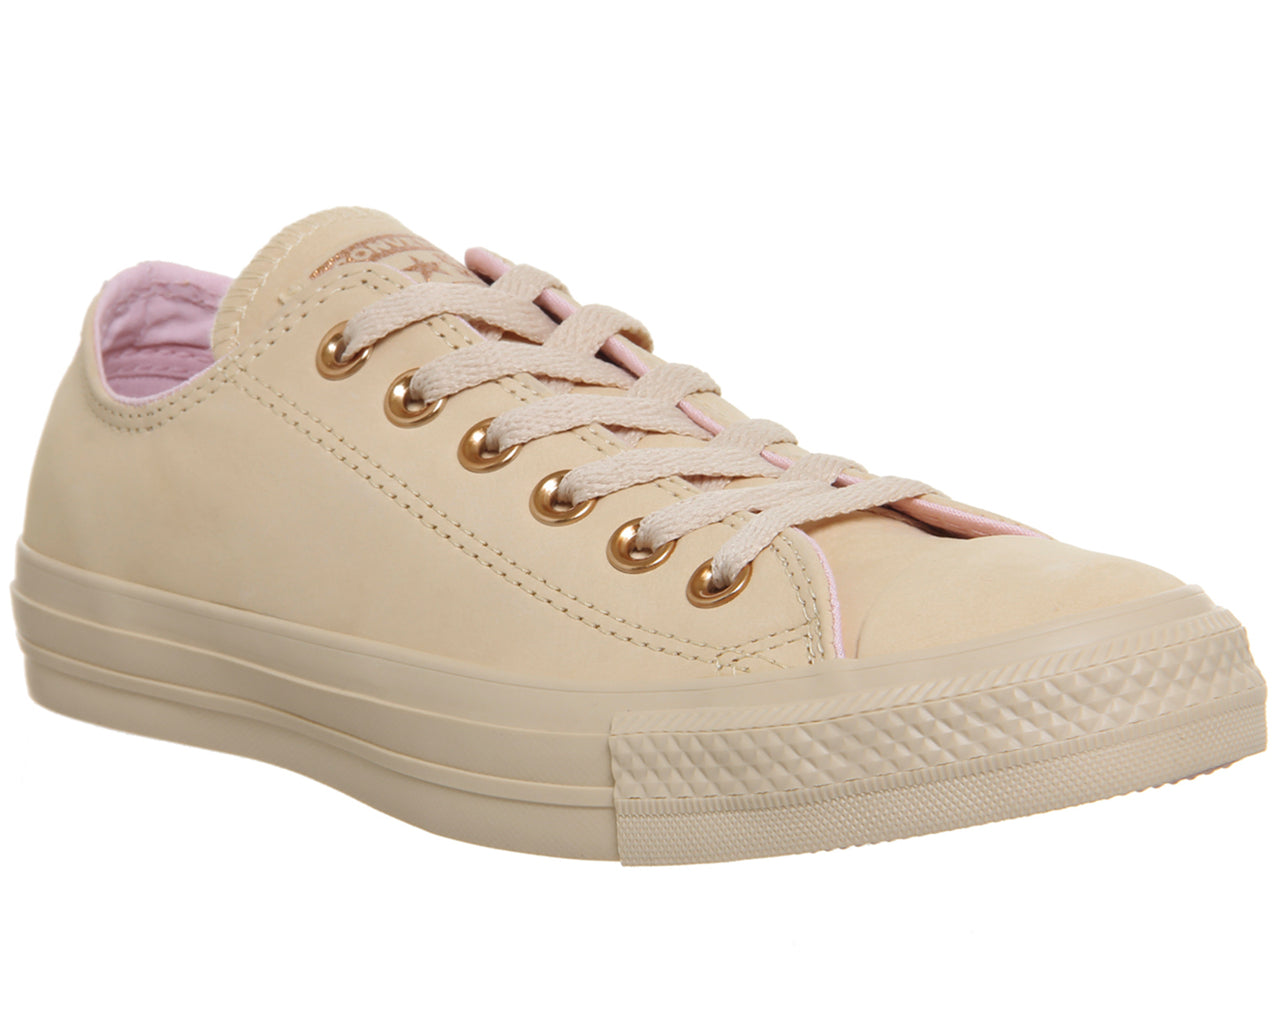 54b2e58810a7 Womens Converse All Star Low Leather Trainers Raw Ginger – OFFCUTS SHOES by  OFFICE